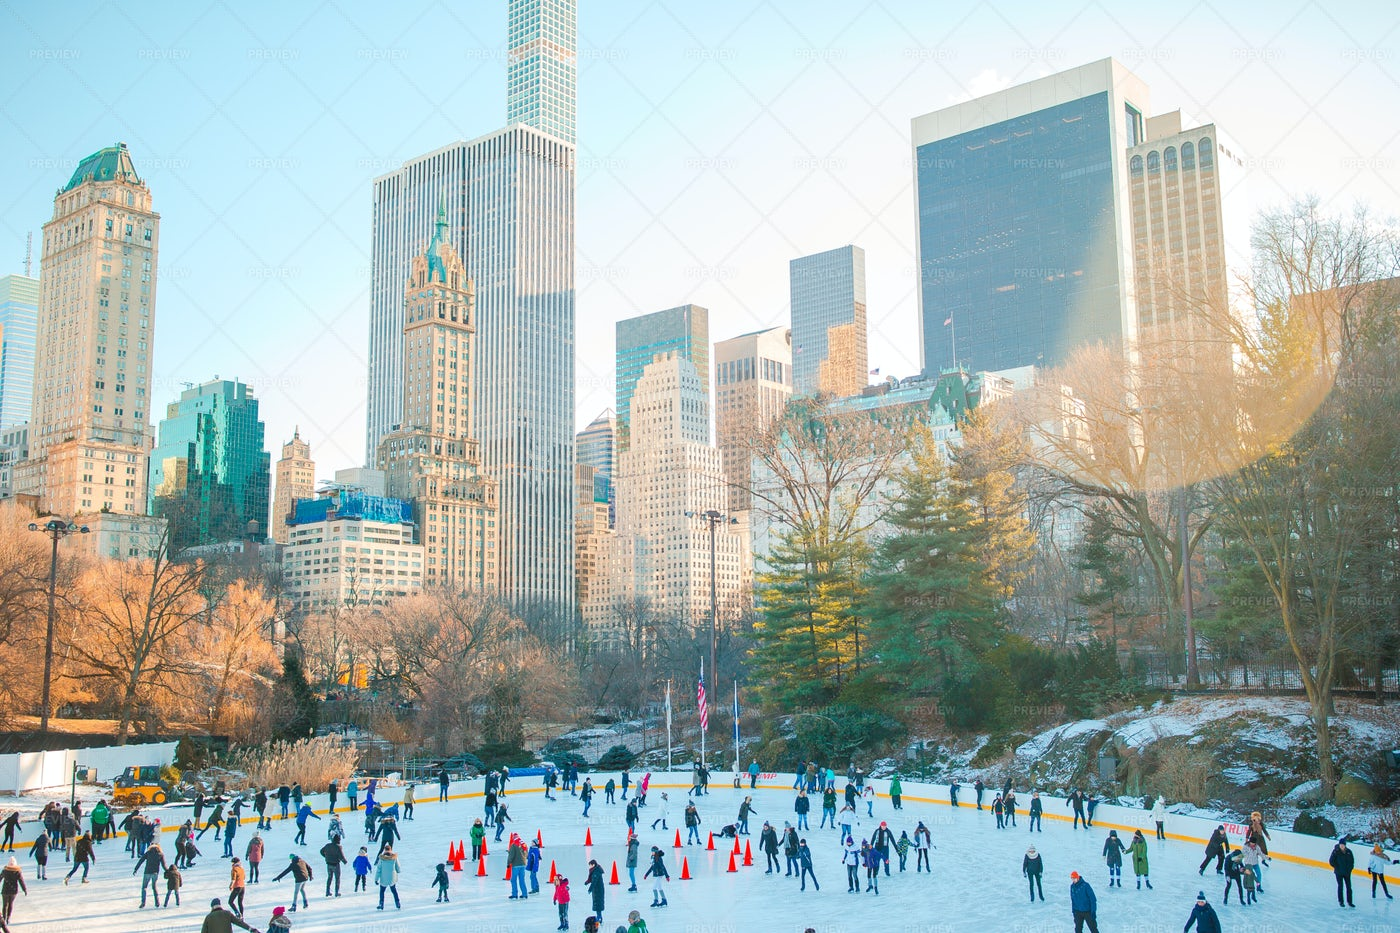 Ice Skaters In New York: Stock Photos